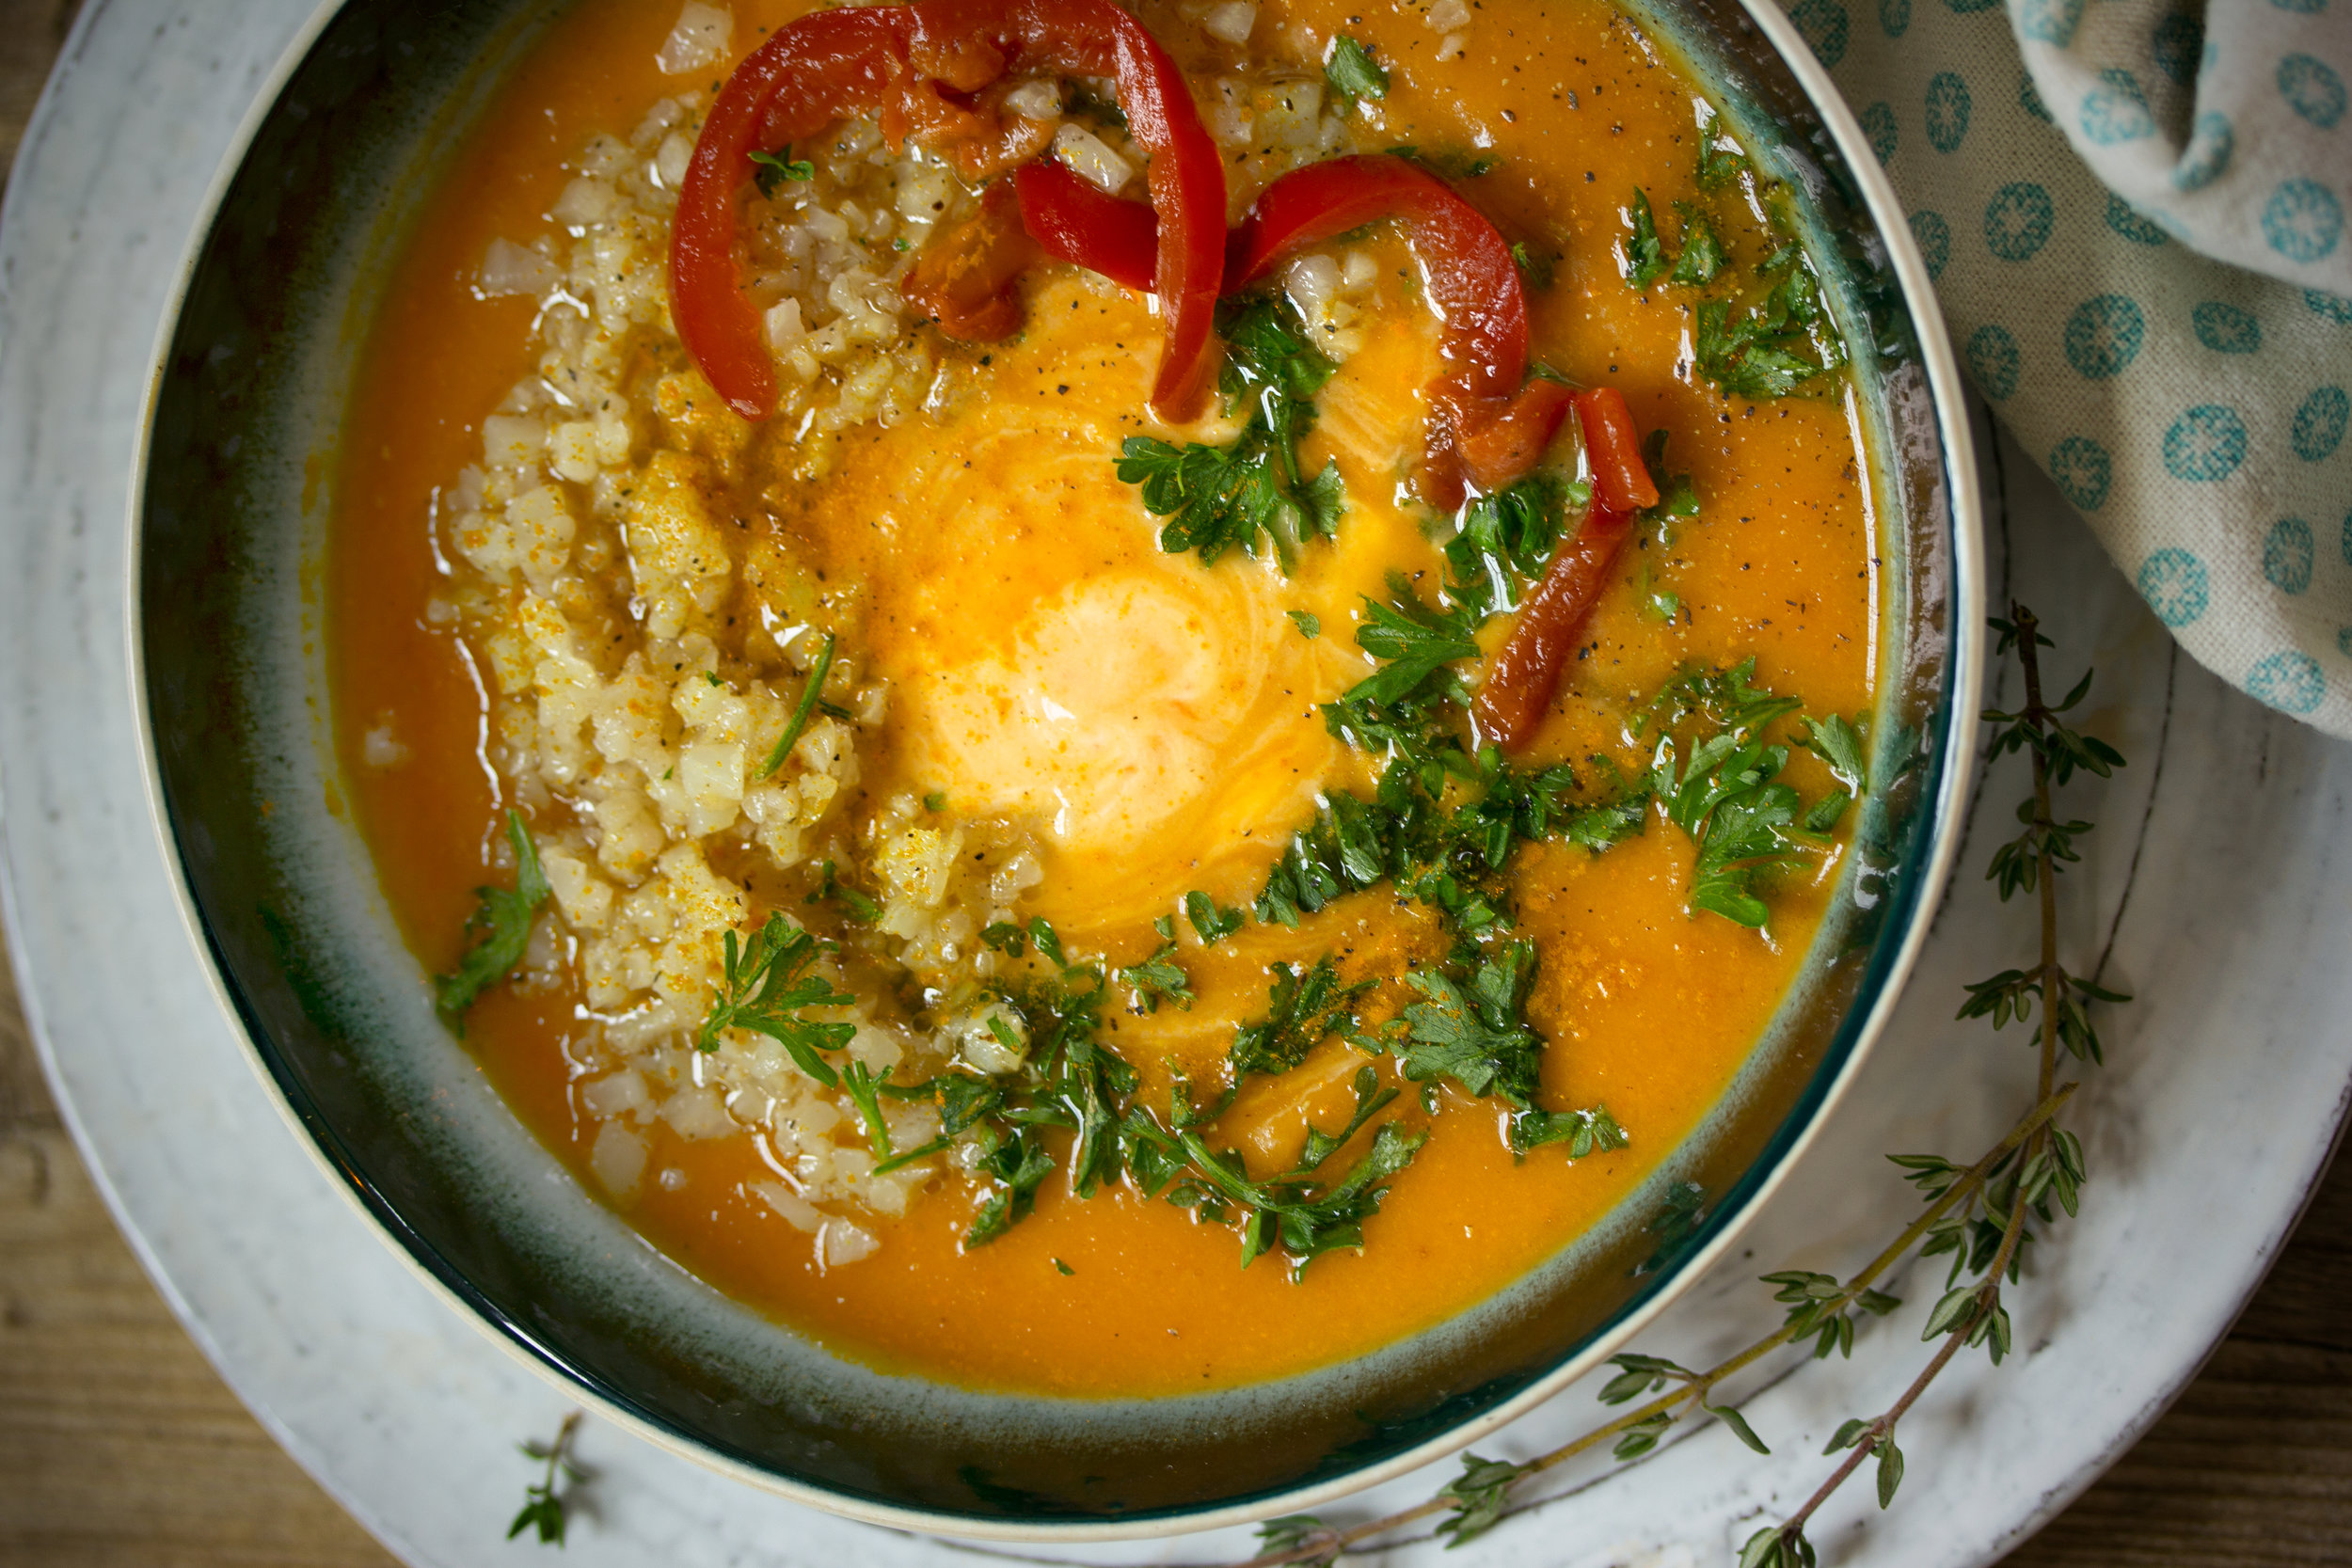 Roasted Red Pepper and Acorn Squash Soup with Riced Cauliflower